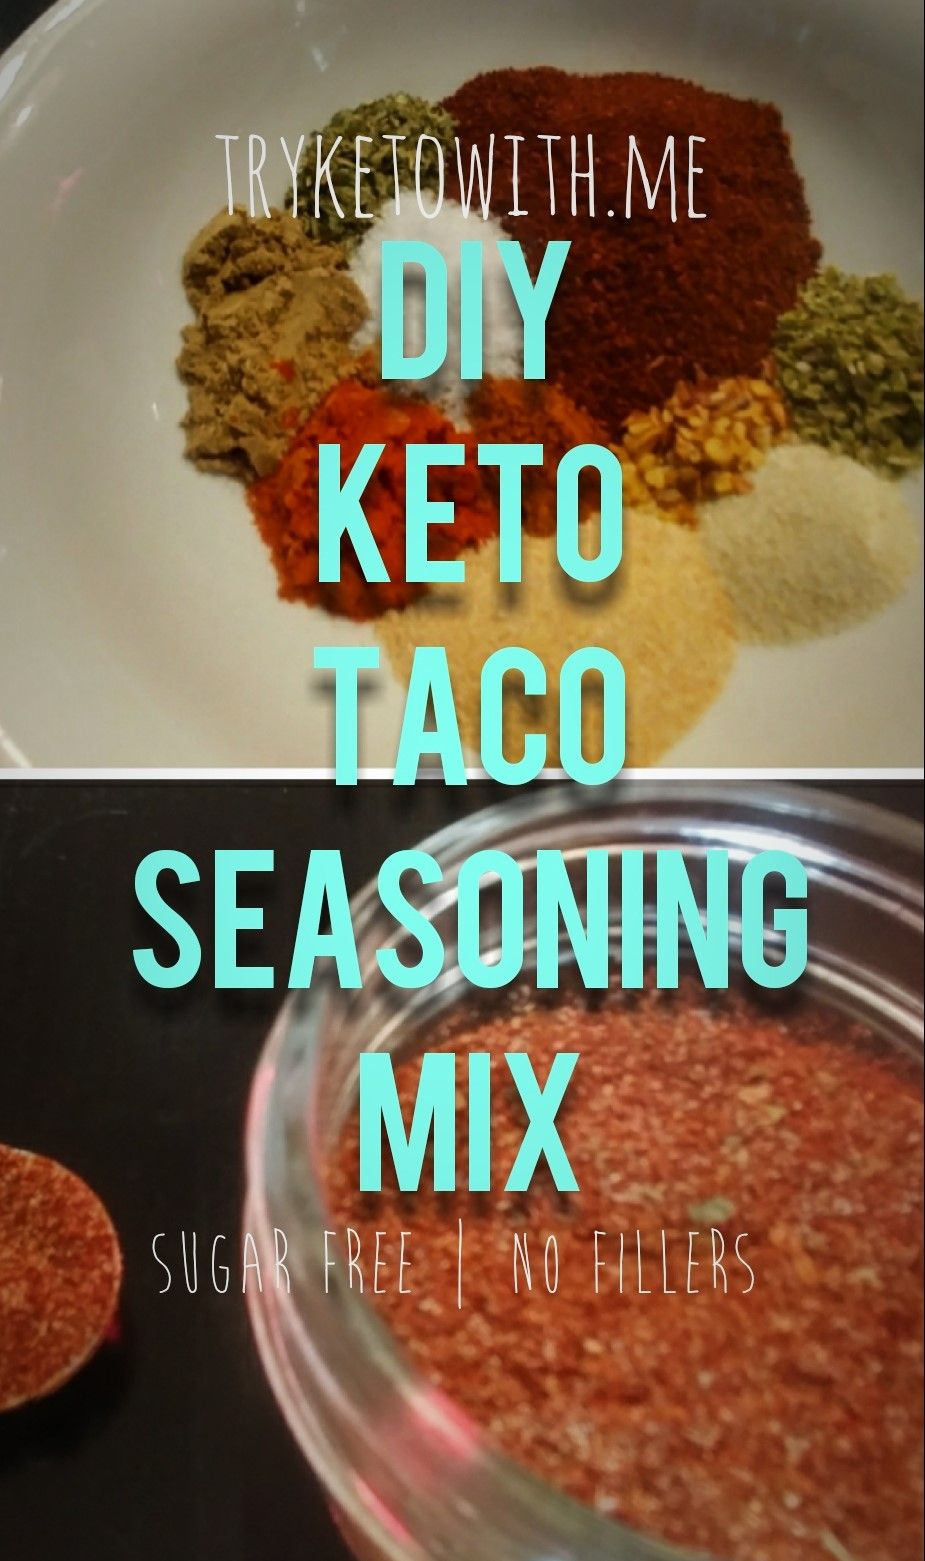 DIY Keto Taco Seasoning Mix #diytacoseasoning